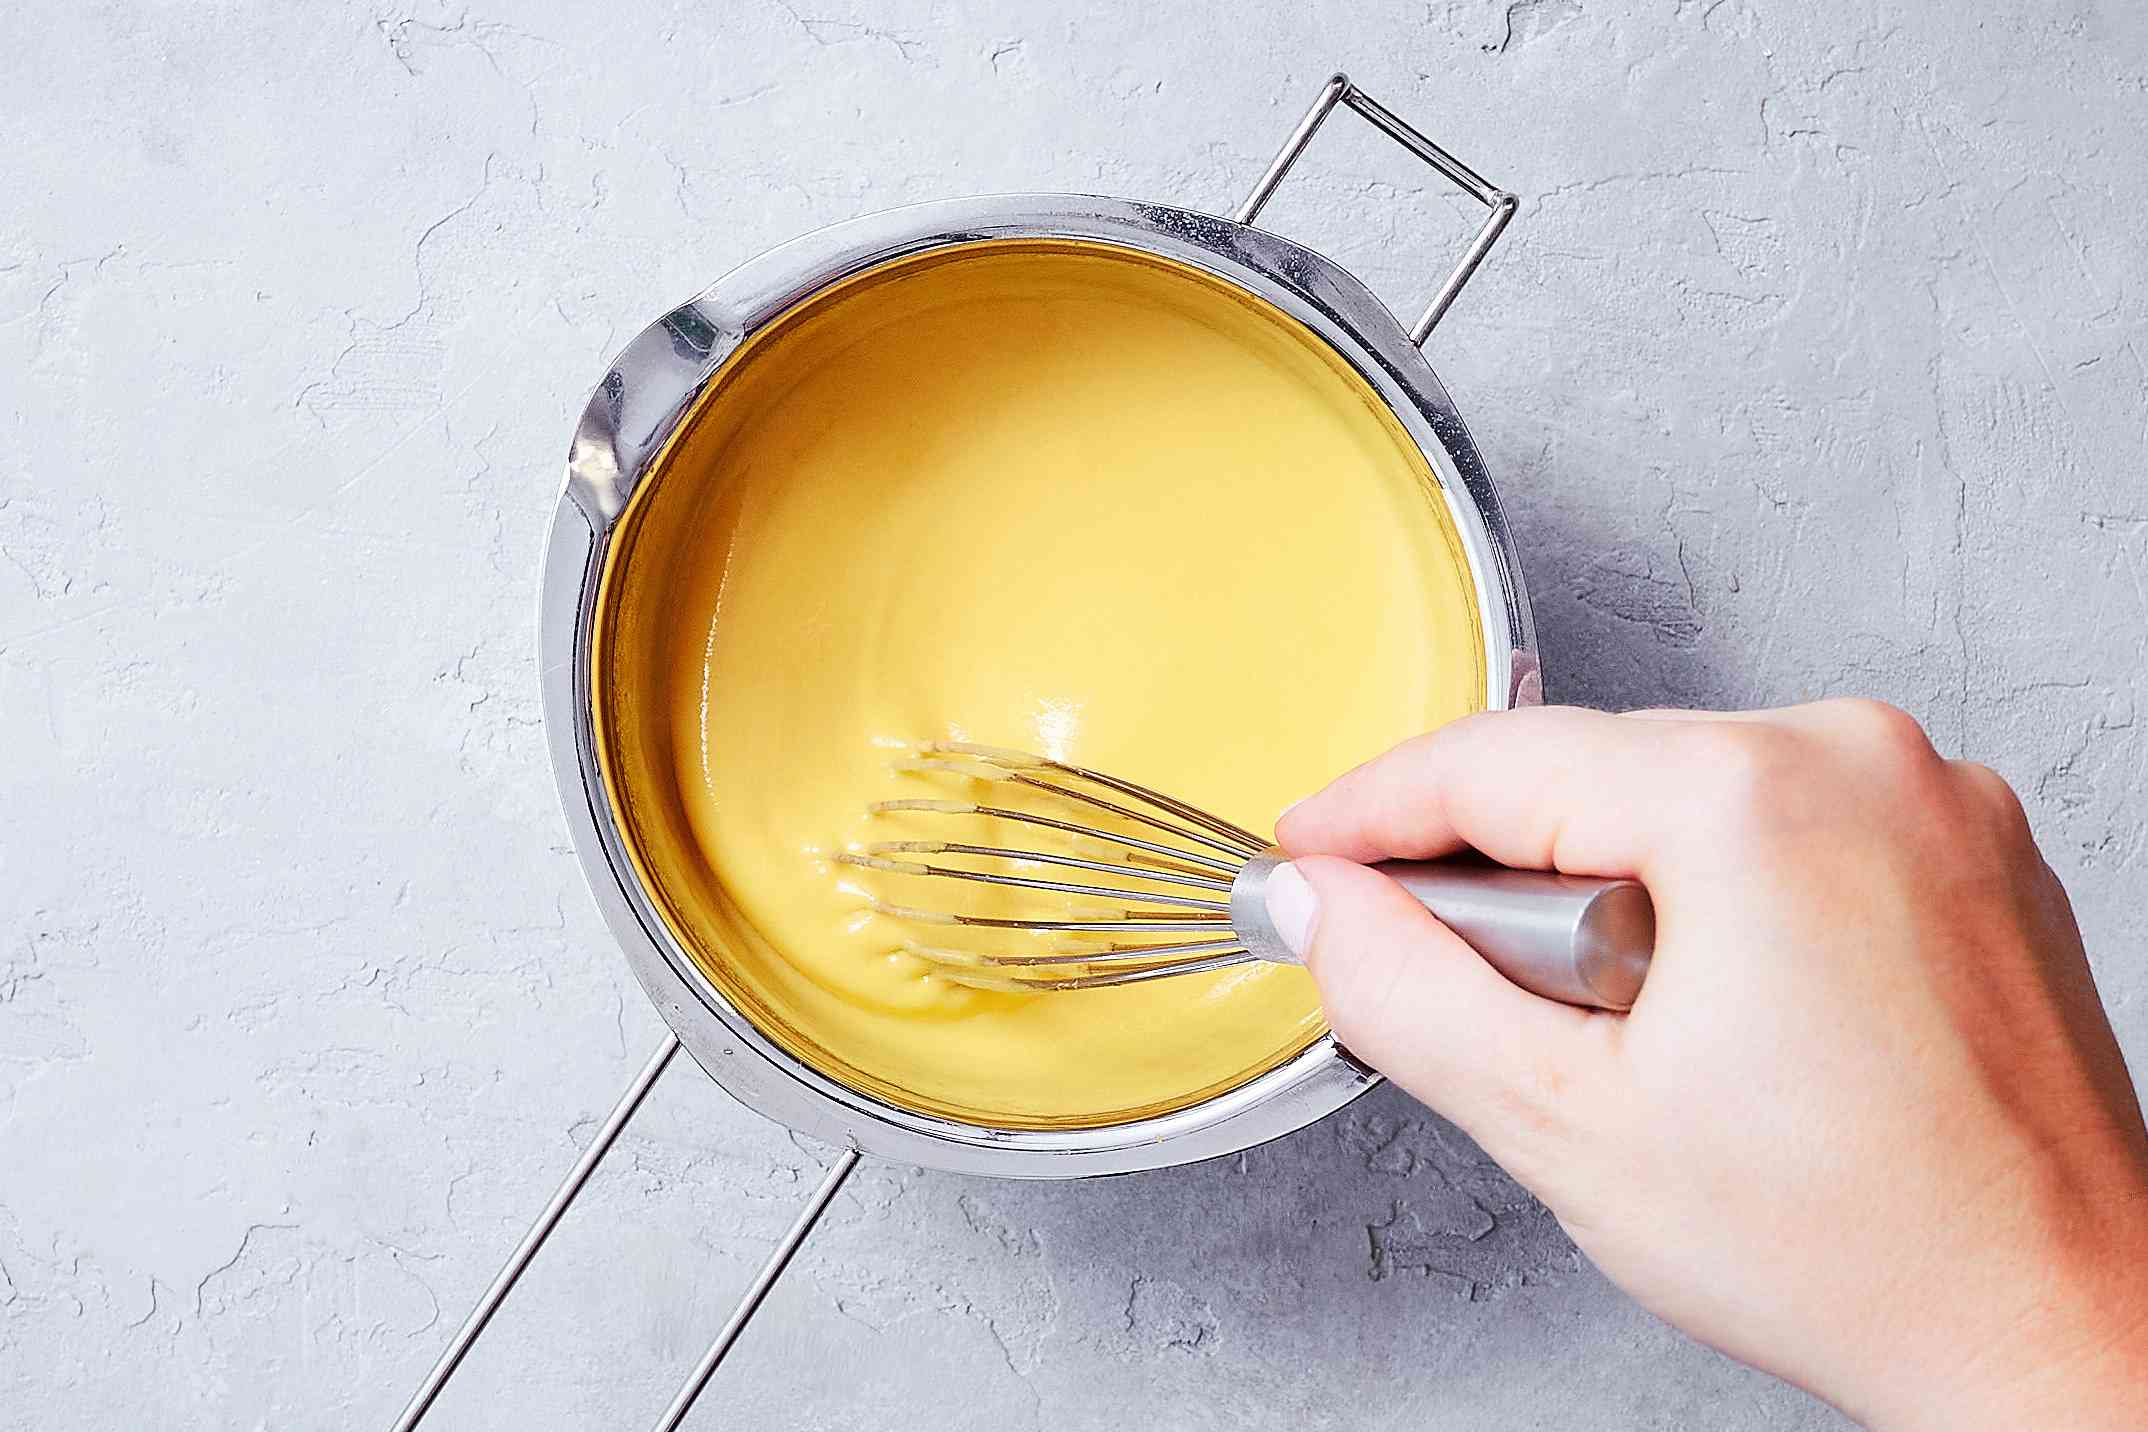 Whisk the sauce